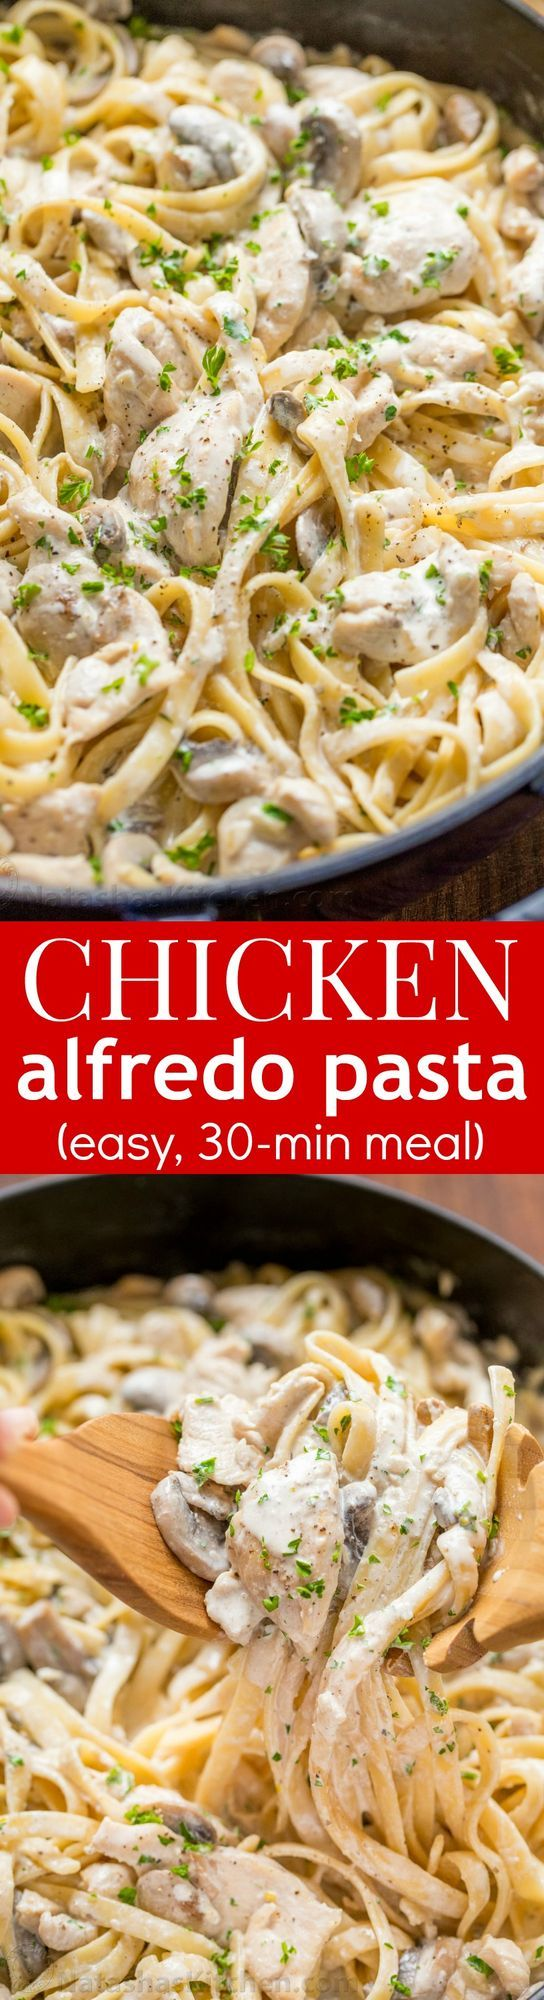 "Mom learned how to make this ""Pollo Chicken Fettuccine Alfredo"" in culinary school. She made this for us when we were kids and we were crazy about it. I've been making this Chicken Fettuccine Alfredo"